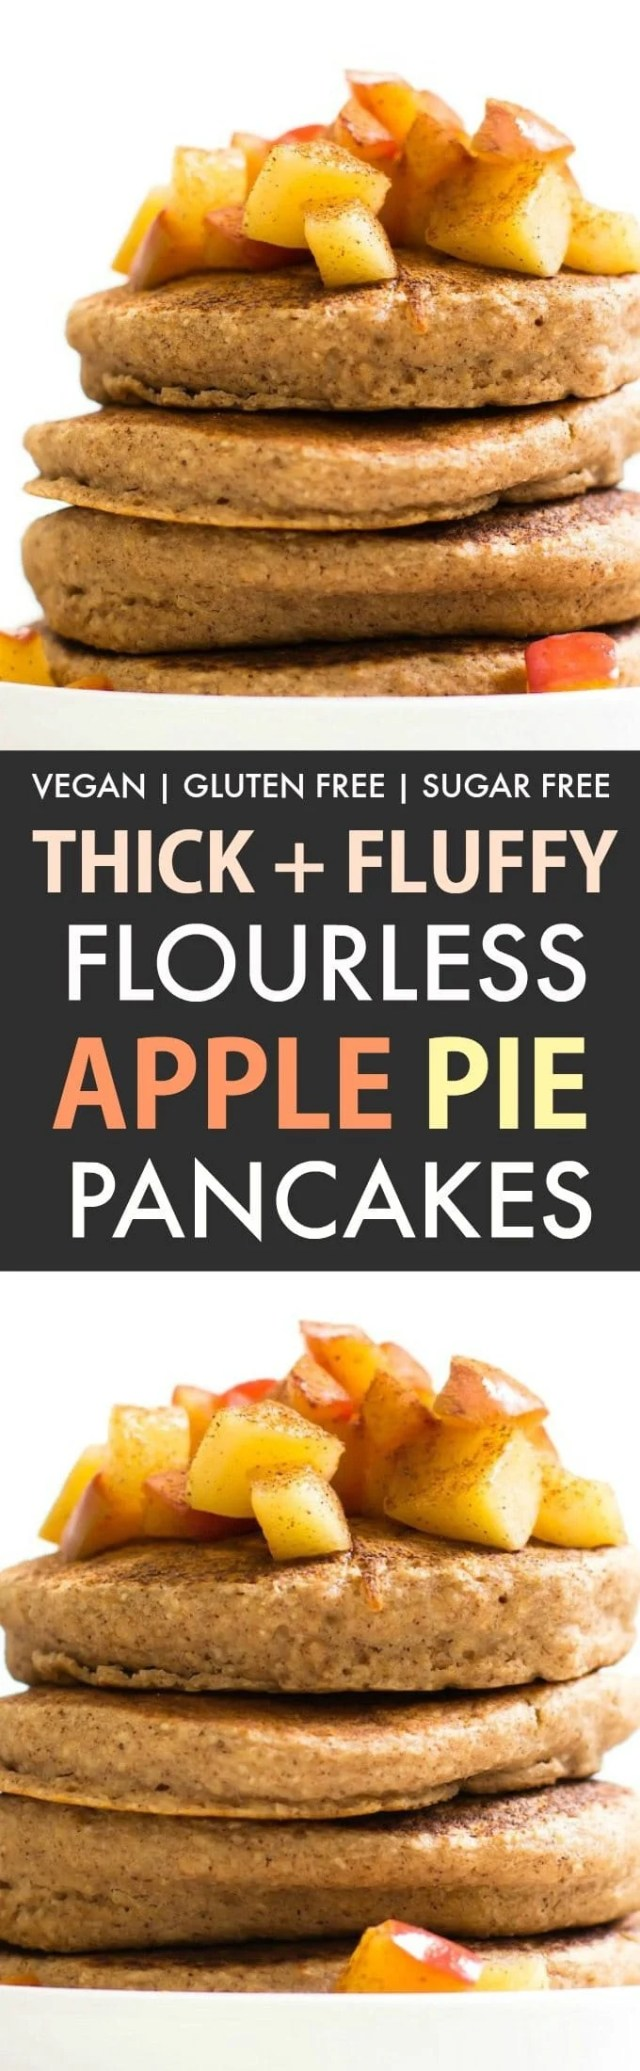 Fluffy Flourless Apple Pie Pancakes (Vegan, Gluten Free, Sugar Free)- An easy, healthy pancake recipe loaded with apple pie flavor and super thick and fluffy. A guilt-free breakfast to keep you satisfied! {v, gf, sf recipe}- thebigmansworld.com #applepie #pancakes